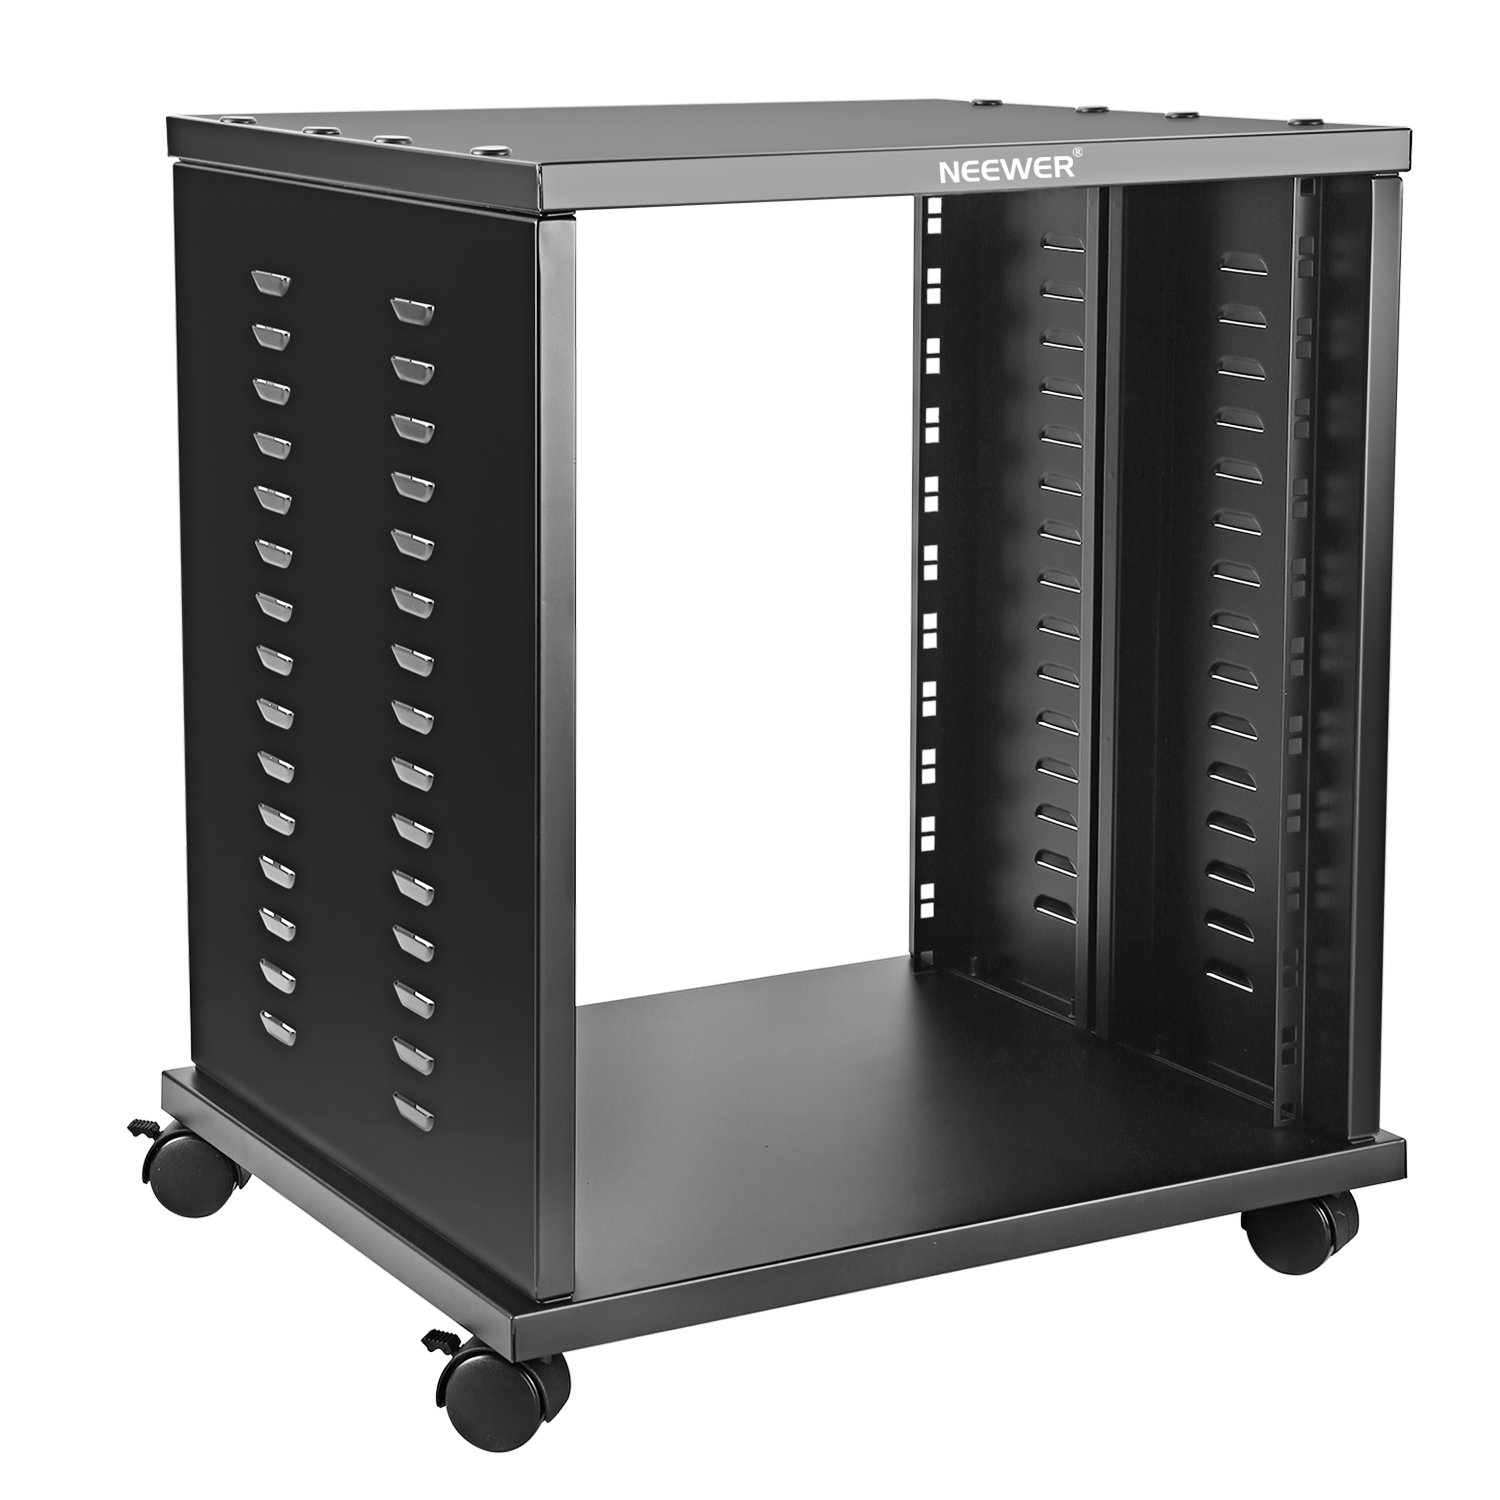 Neewer 12U Universal Equipment Rack Stand Open Frame with 4 Casters Black Finished, Perfect for Audio Video Equipment Storage 40089763